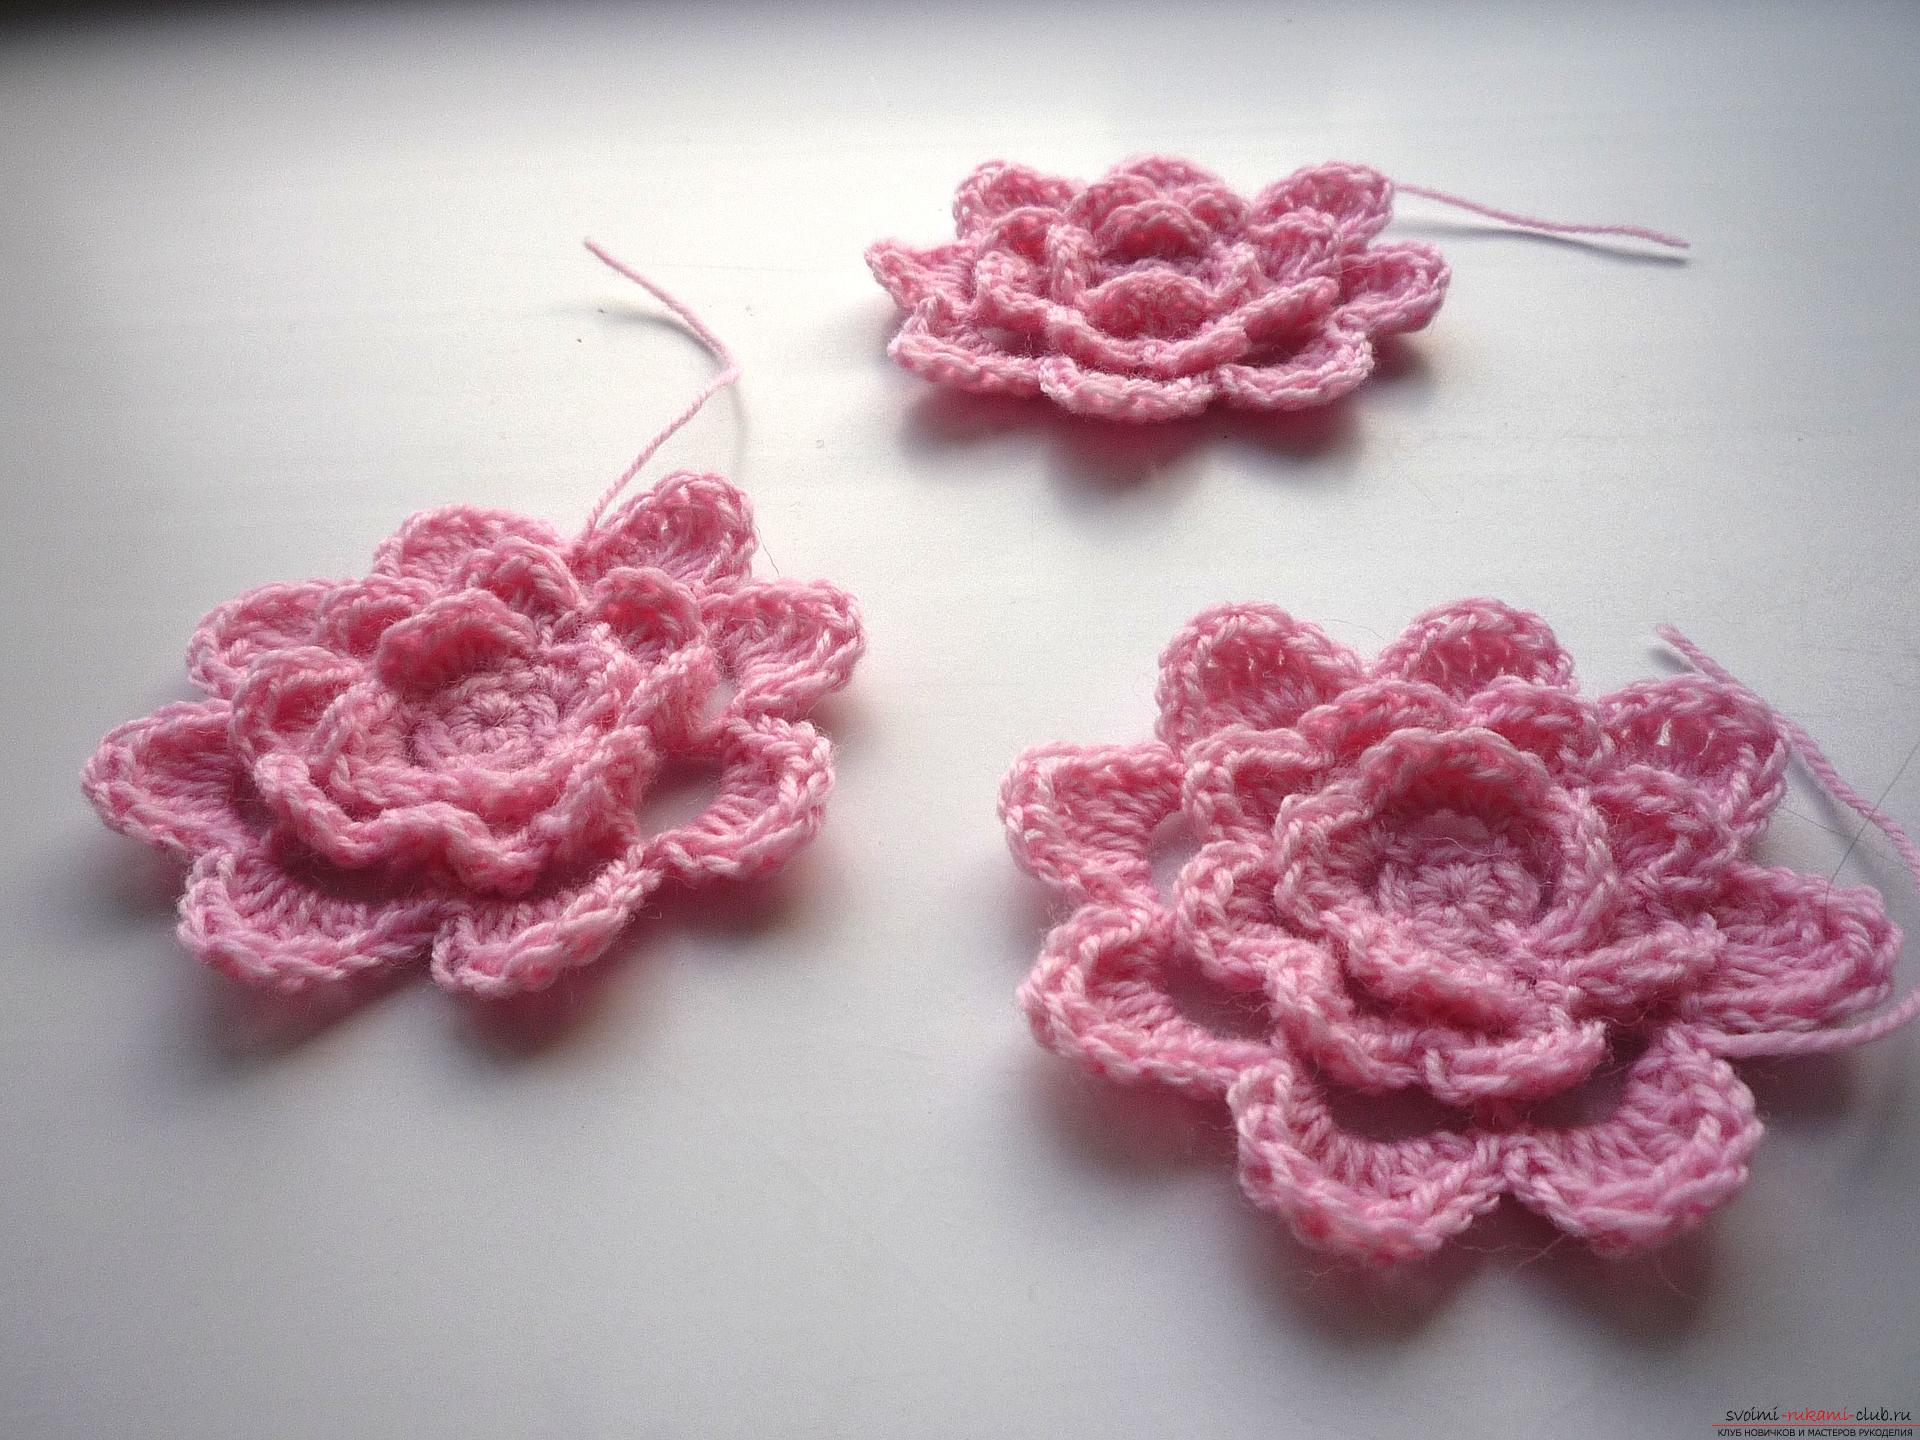 This master class of crocheting contains a crochet flower scheme for a plaid .. Photo №11